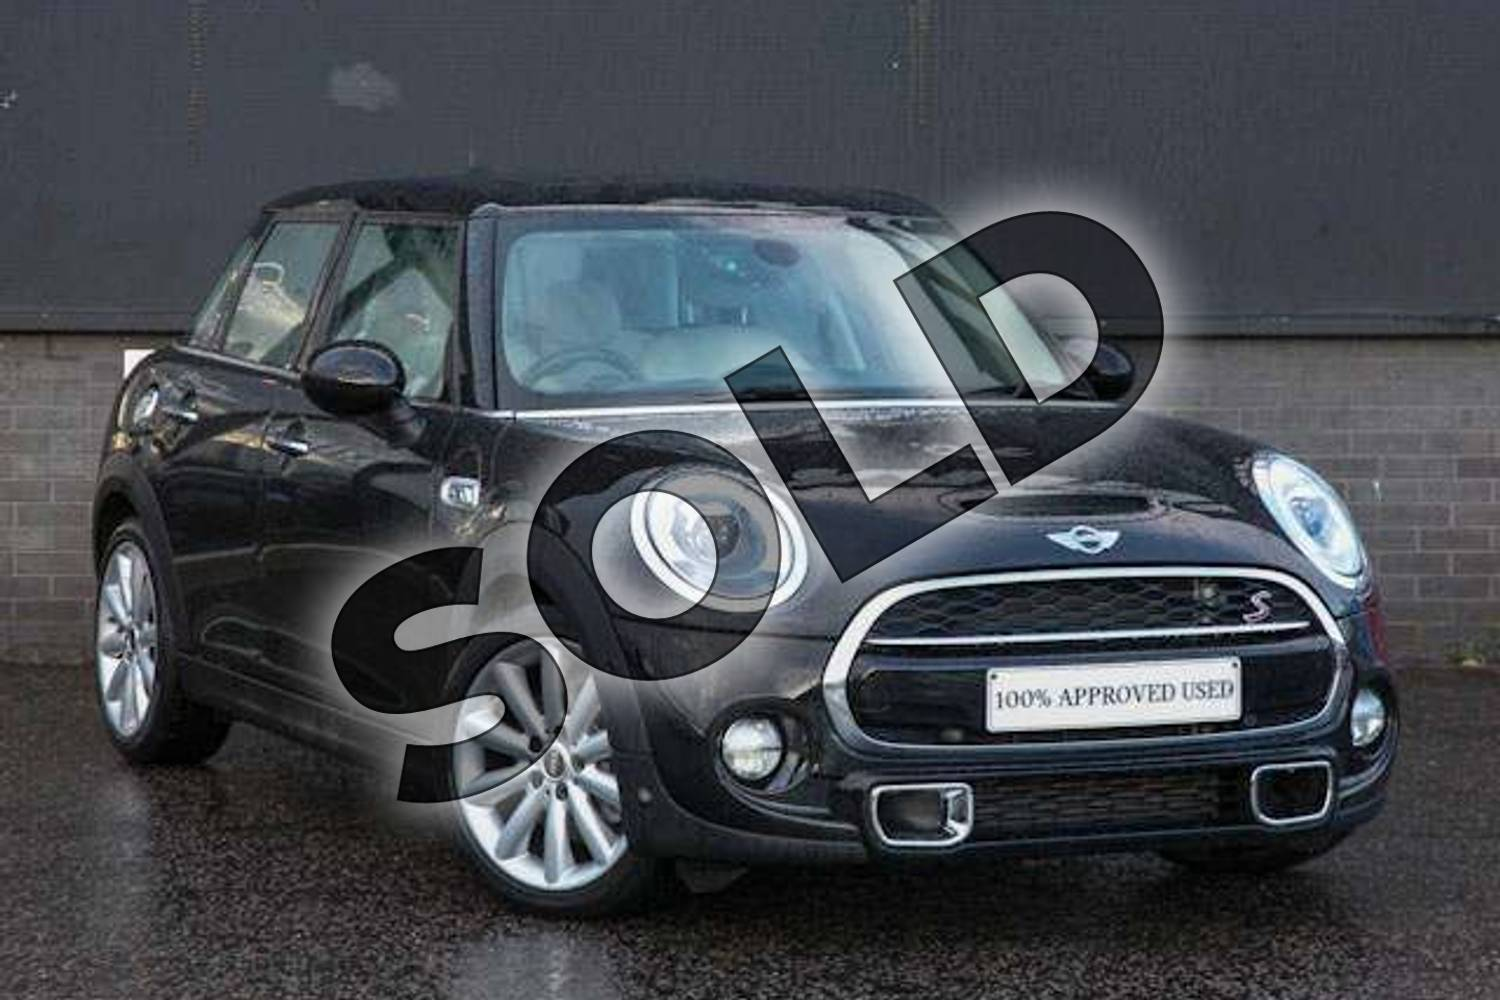 2016 MINI Hatchback 2.0 Cooper S 5dr in Midnight Black at Listers Boston (MINI)